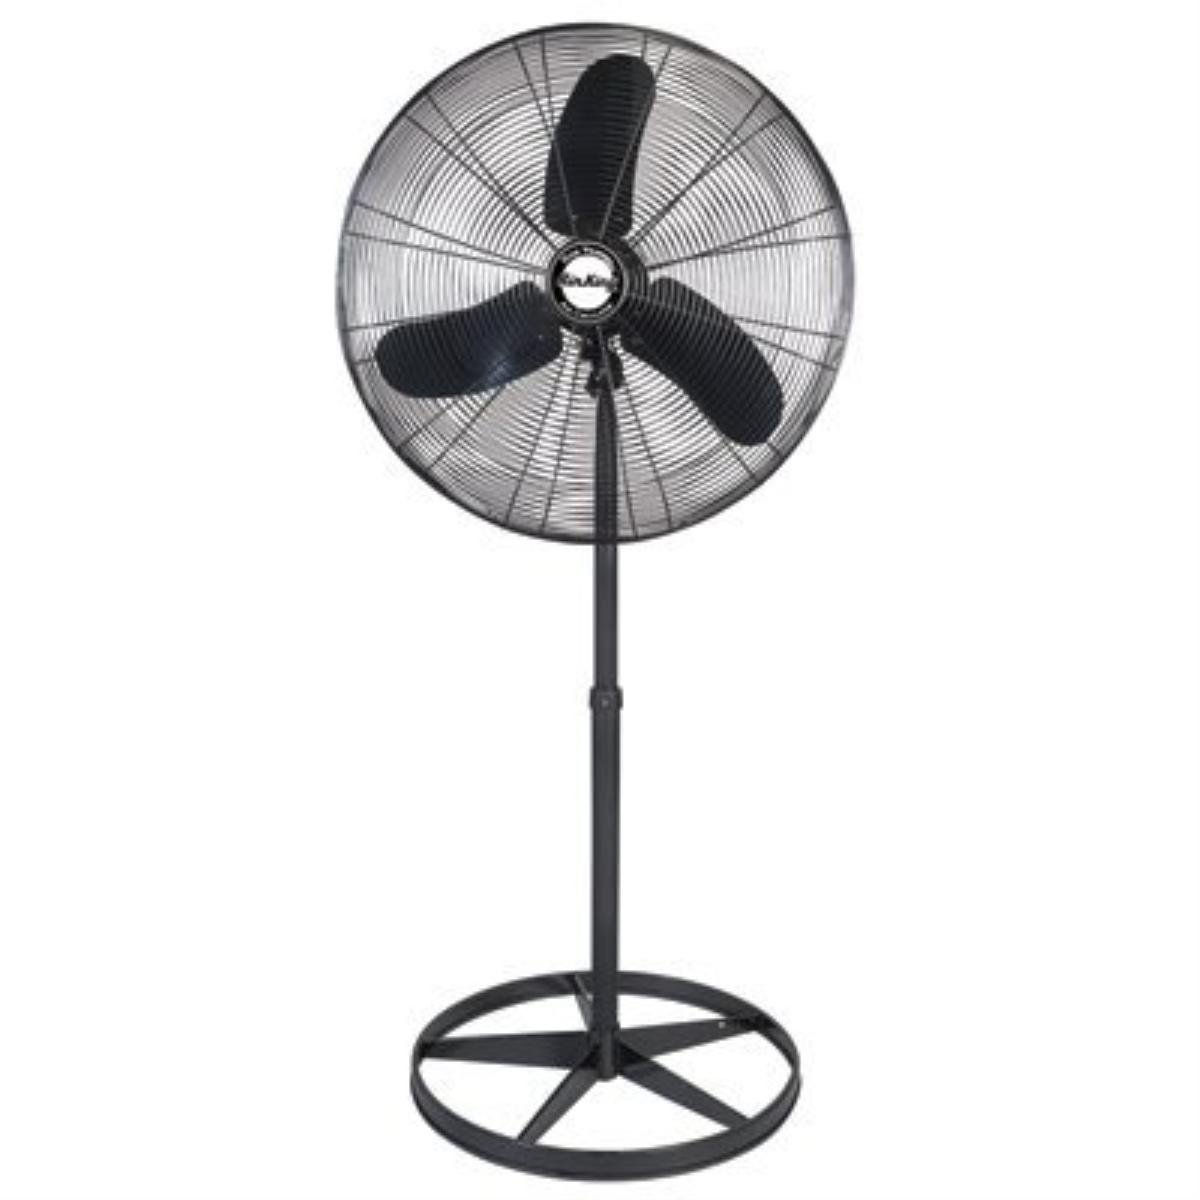 fan cooling pedestal ventilation industrial machinery speed shop